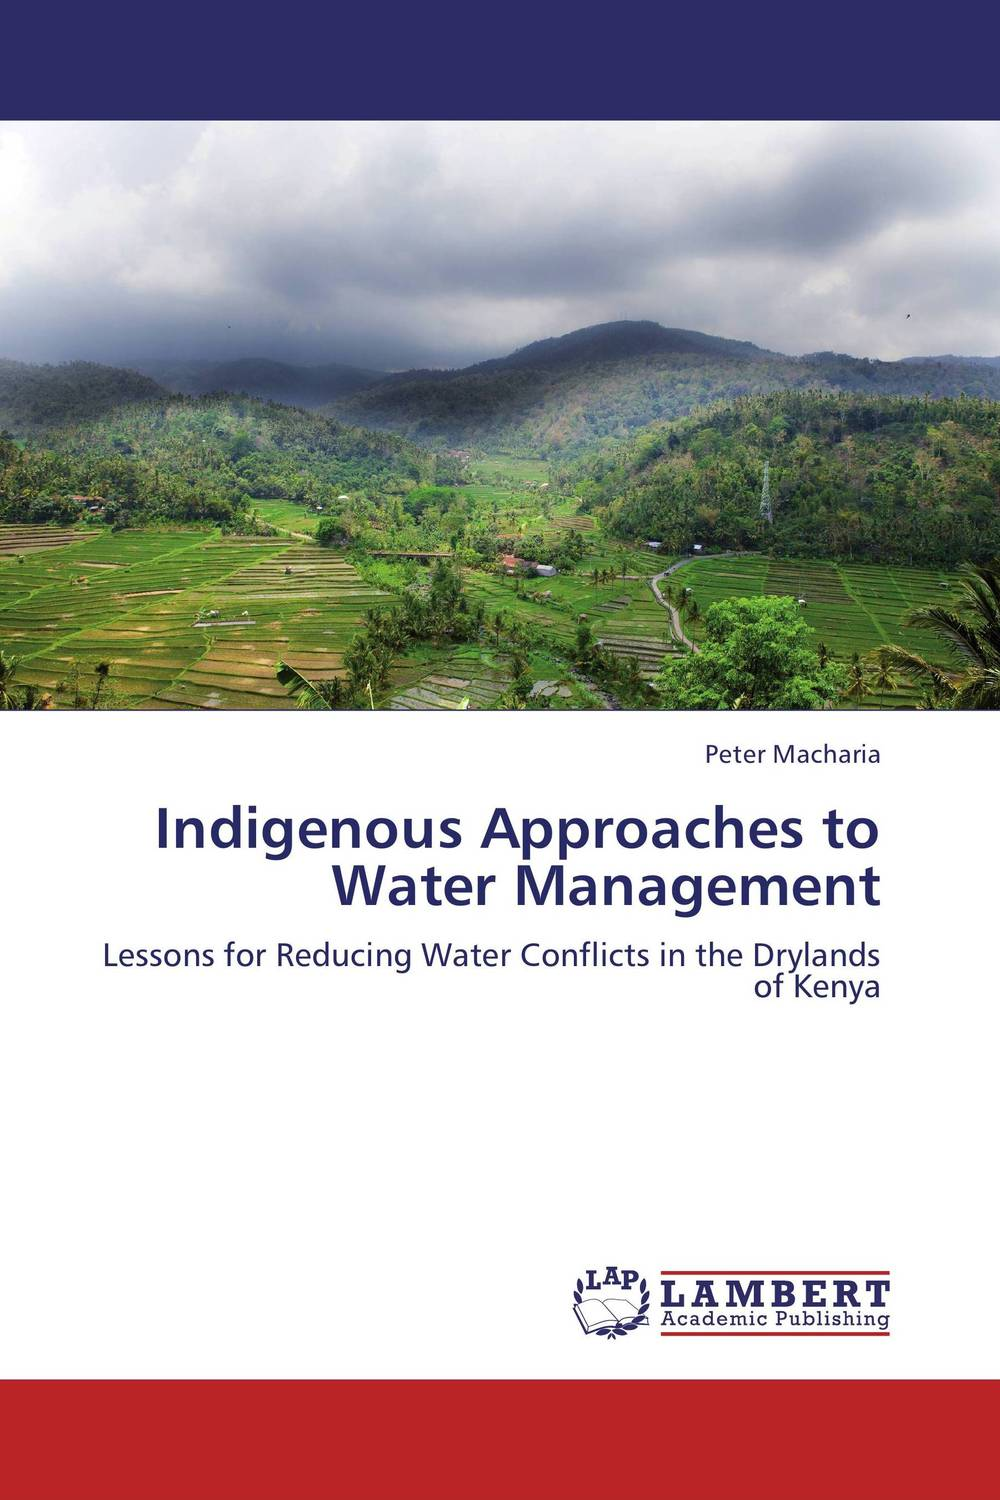 Indigenous Approaches to Water Management alex kisingo impact of heathland management approaches on ground beetle communities